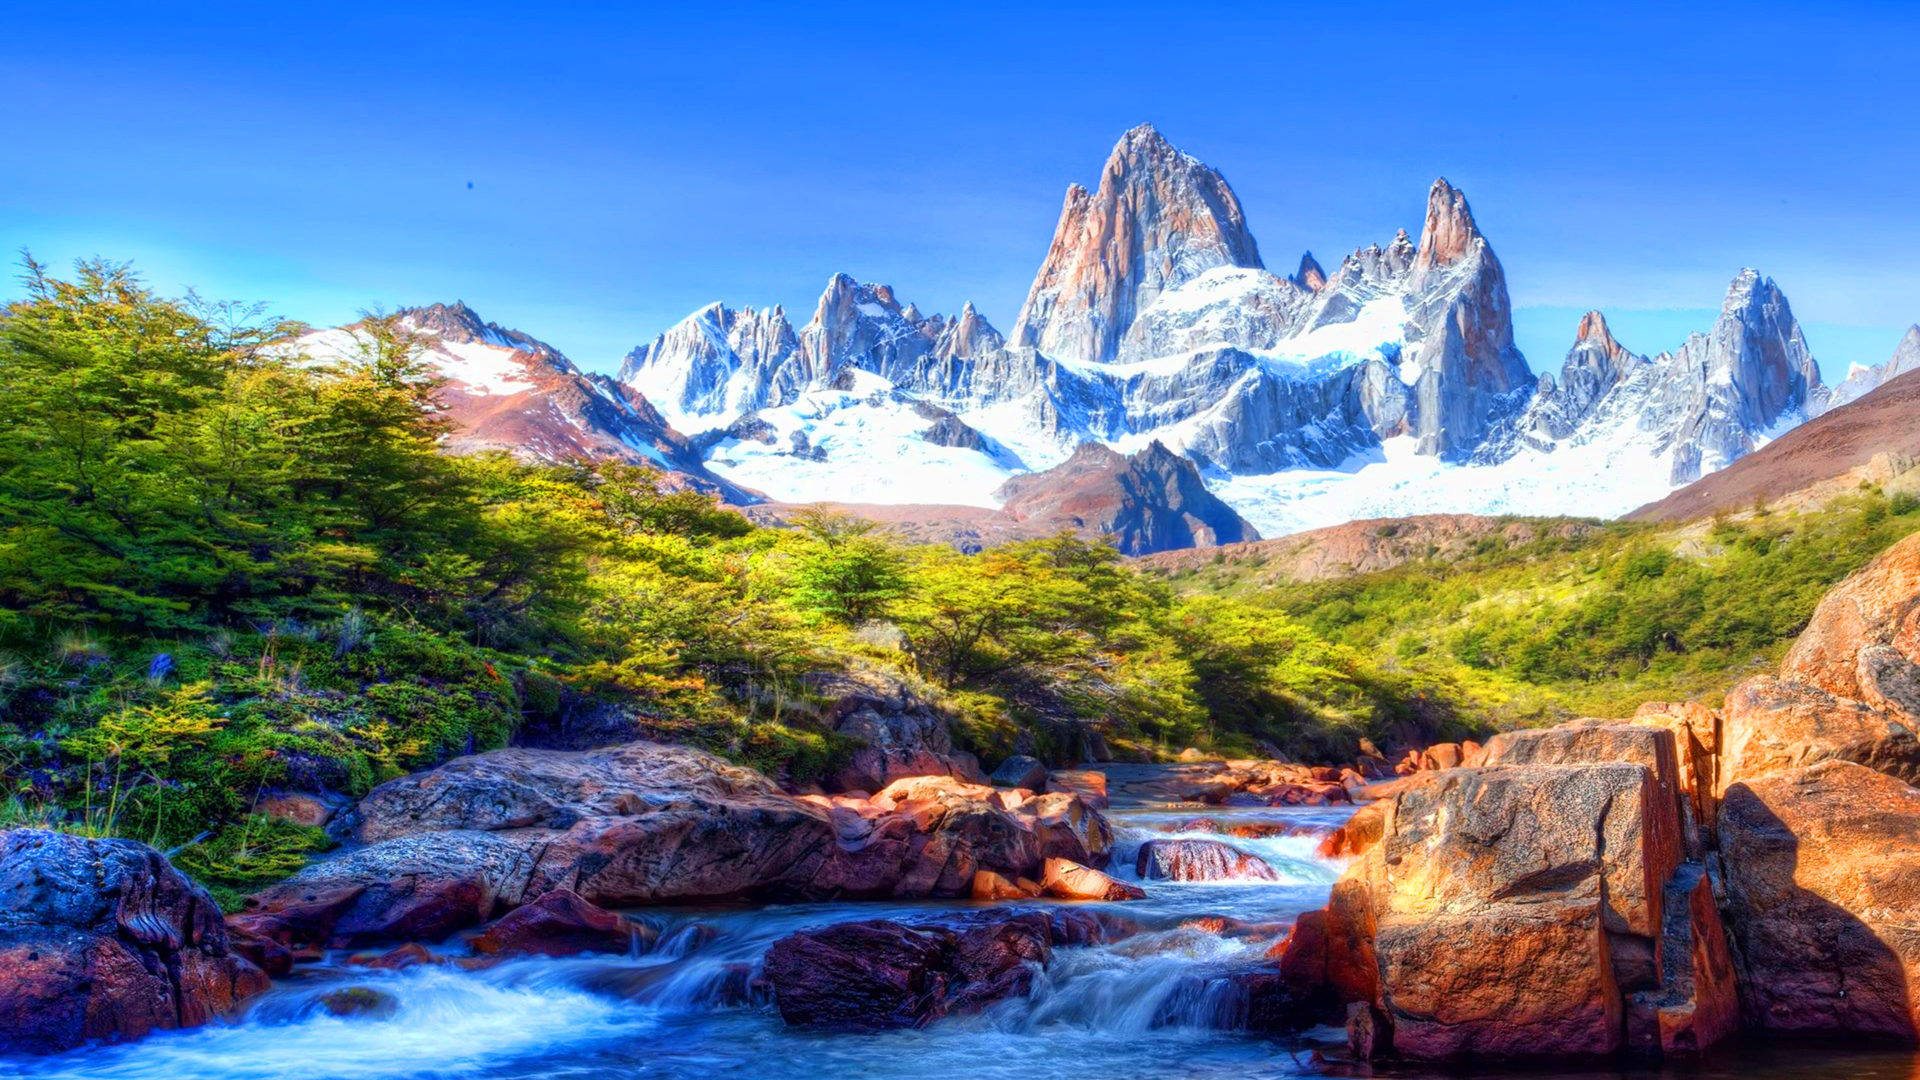 Fall Flowers Desk Background Wallpaper Mountain Scenery With Snow Covered River Rocks Beautiful